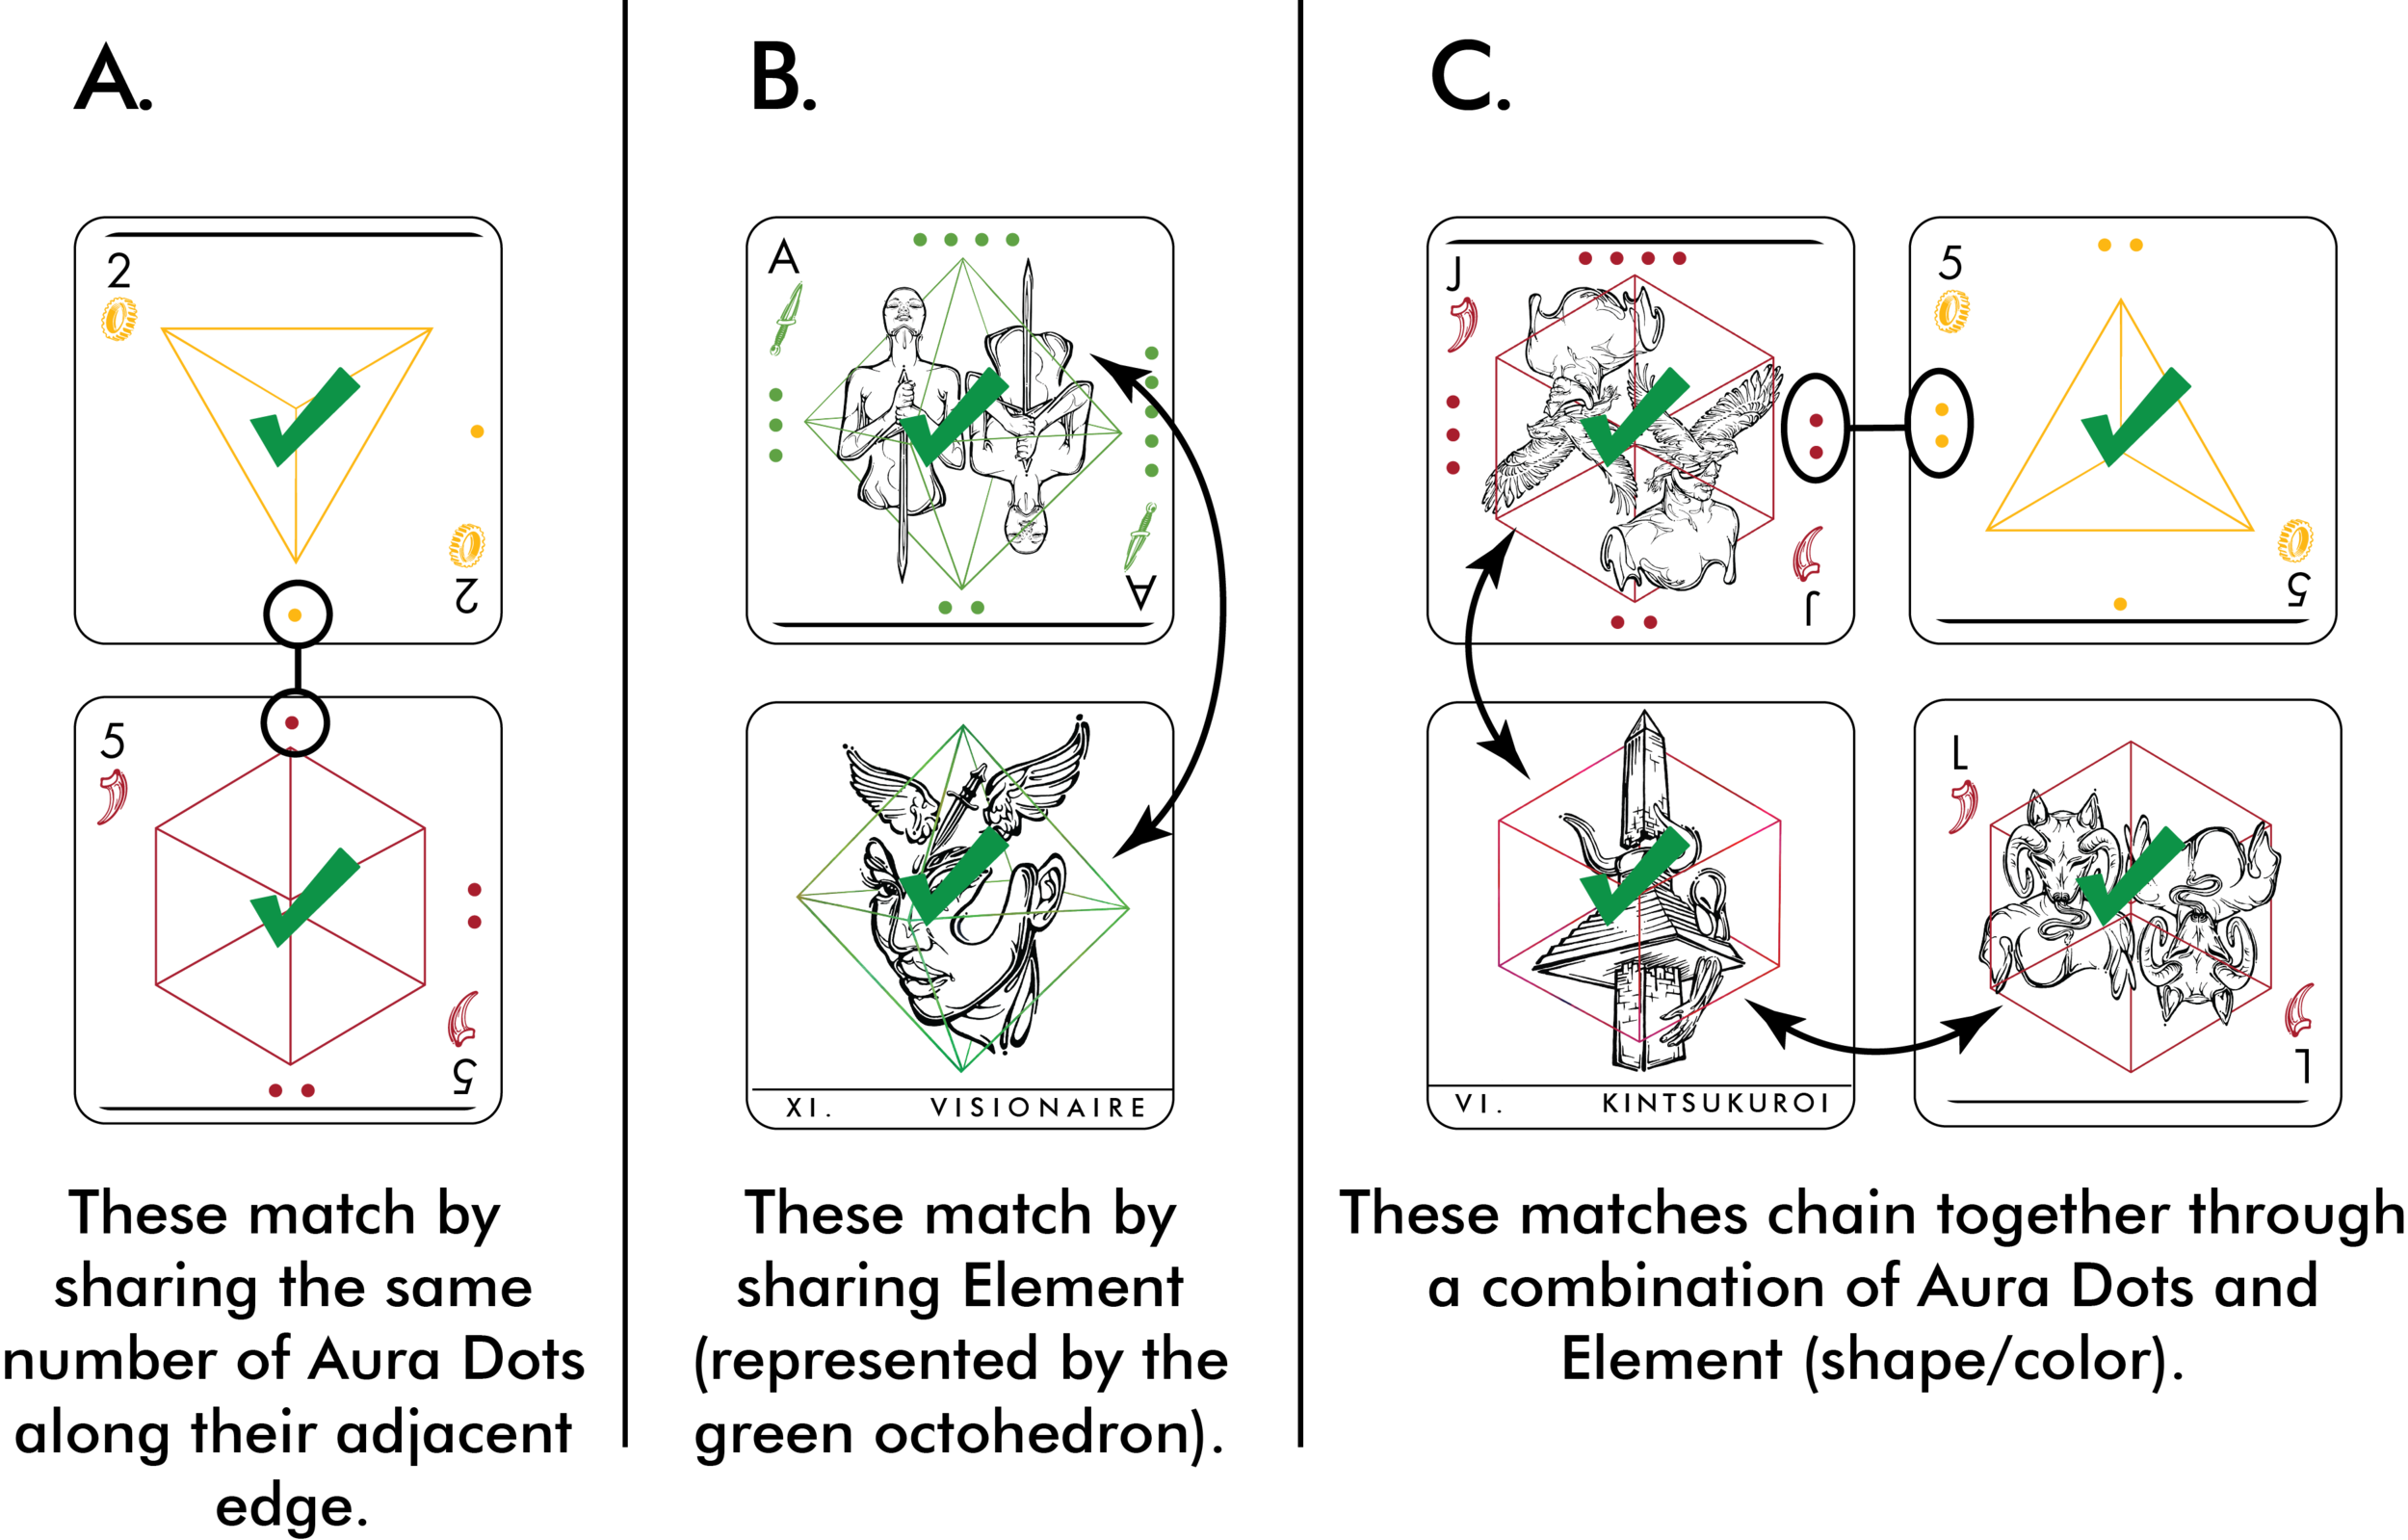 Fig. 1.2: Standard matches, elemental matches, and chains.